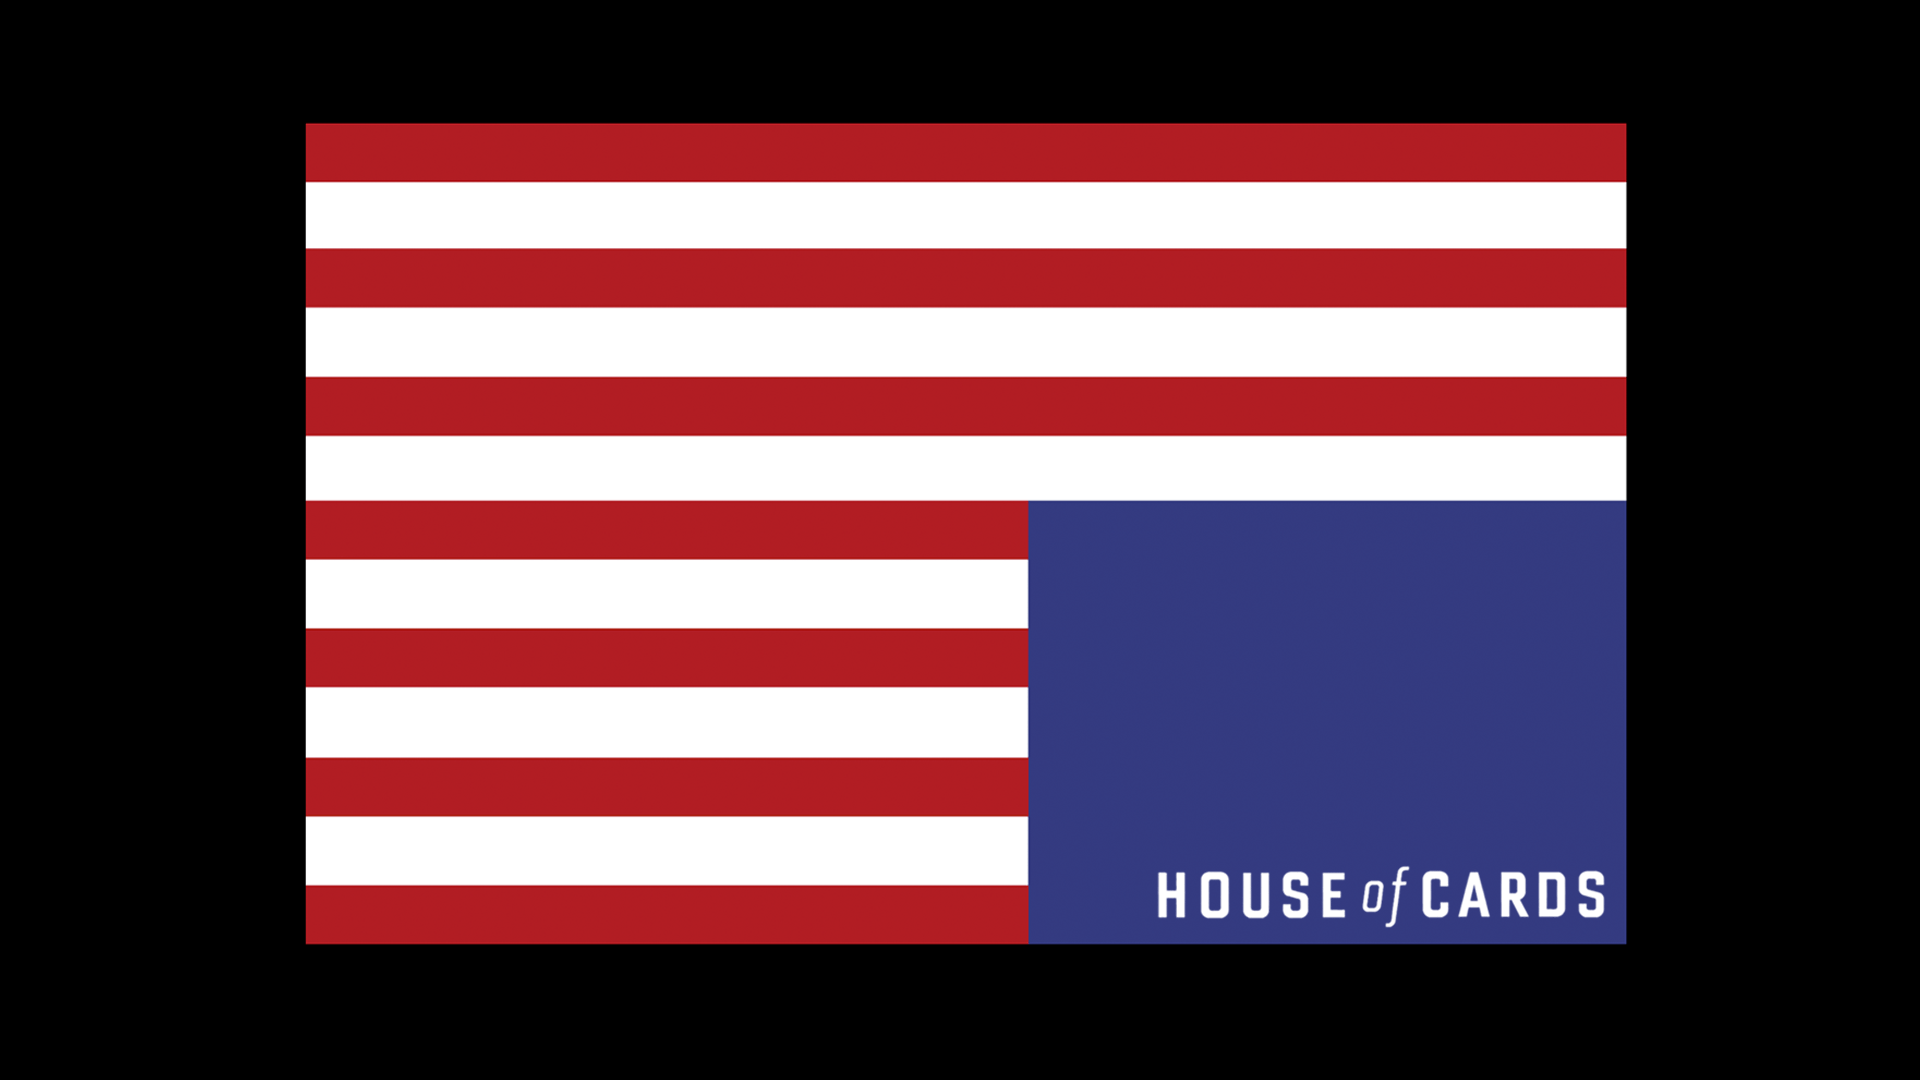 Minimalistic House of Cards Wallpapers : HouseOfCards